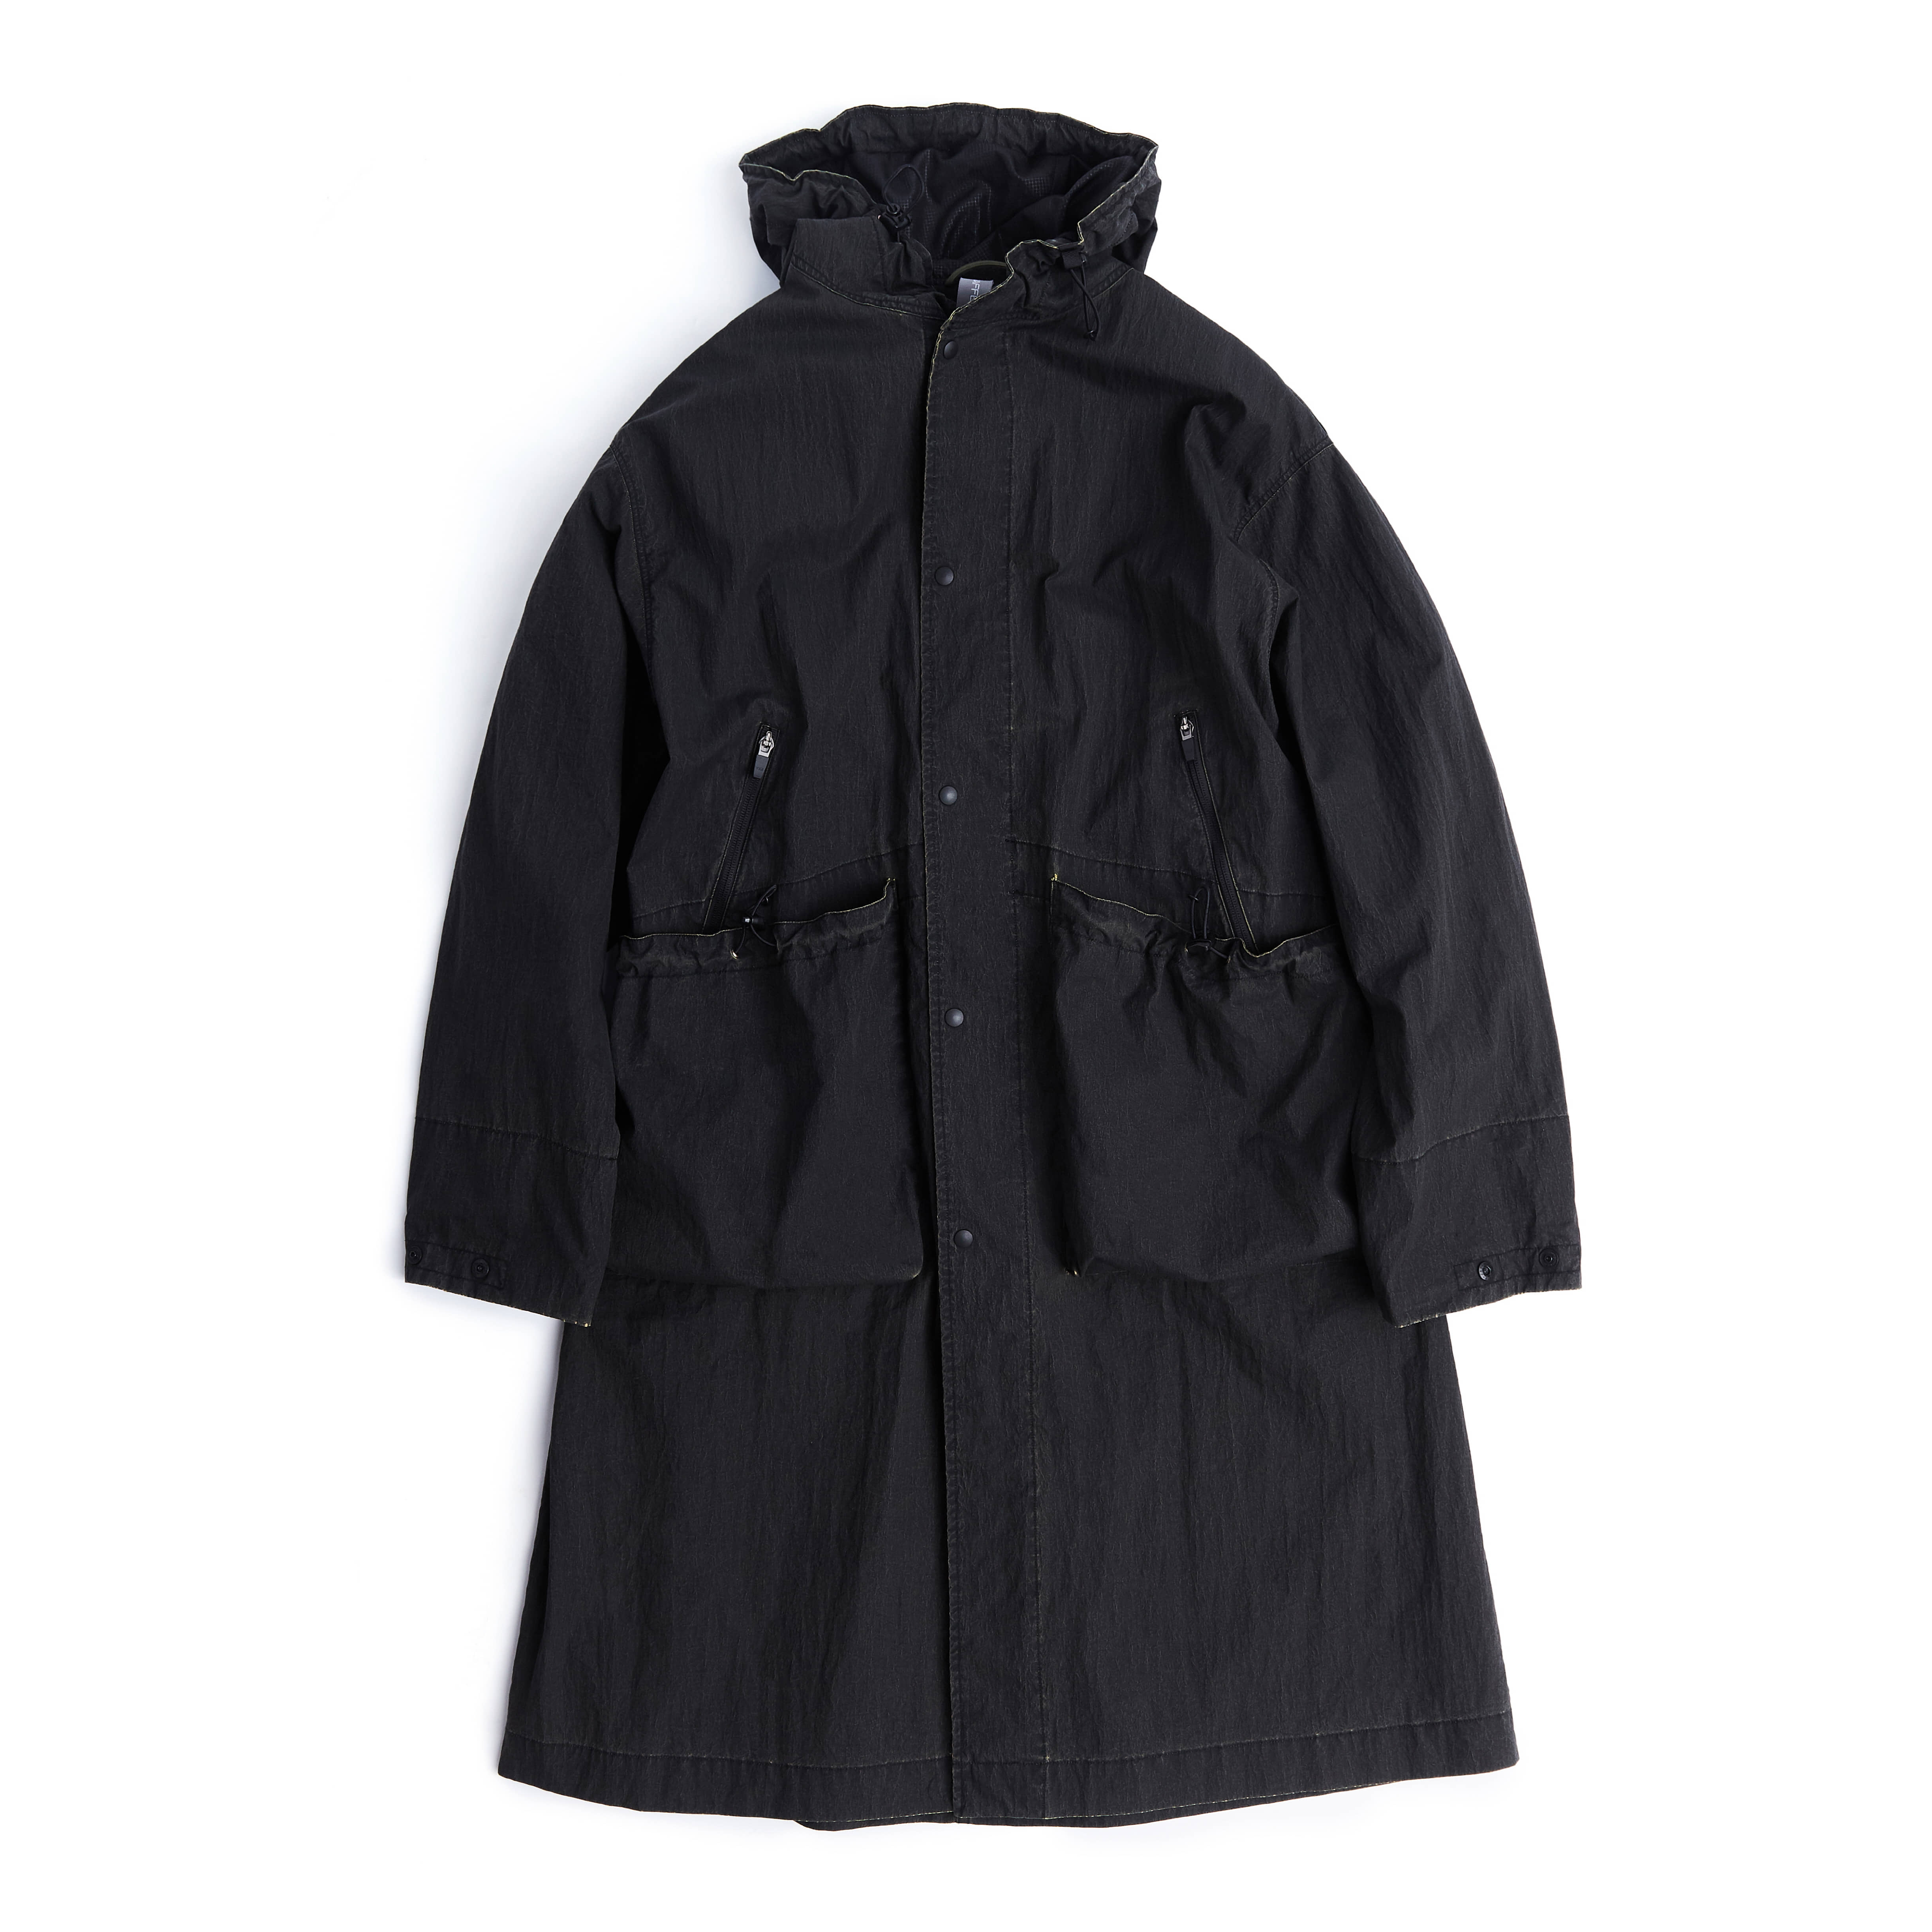 언어펙티드 OVERSIZED LONG PARKA_Cracked Black